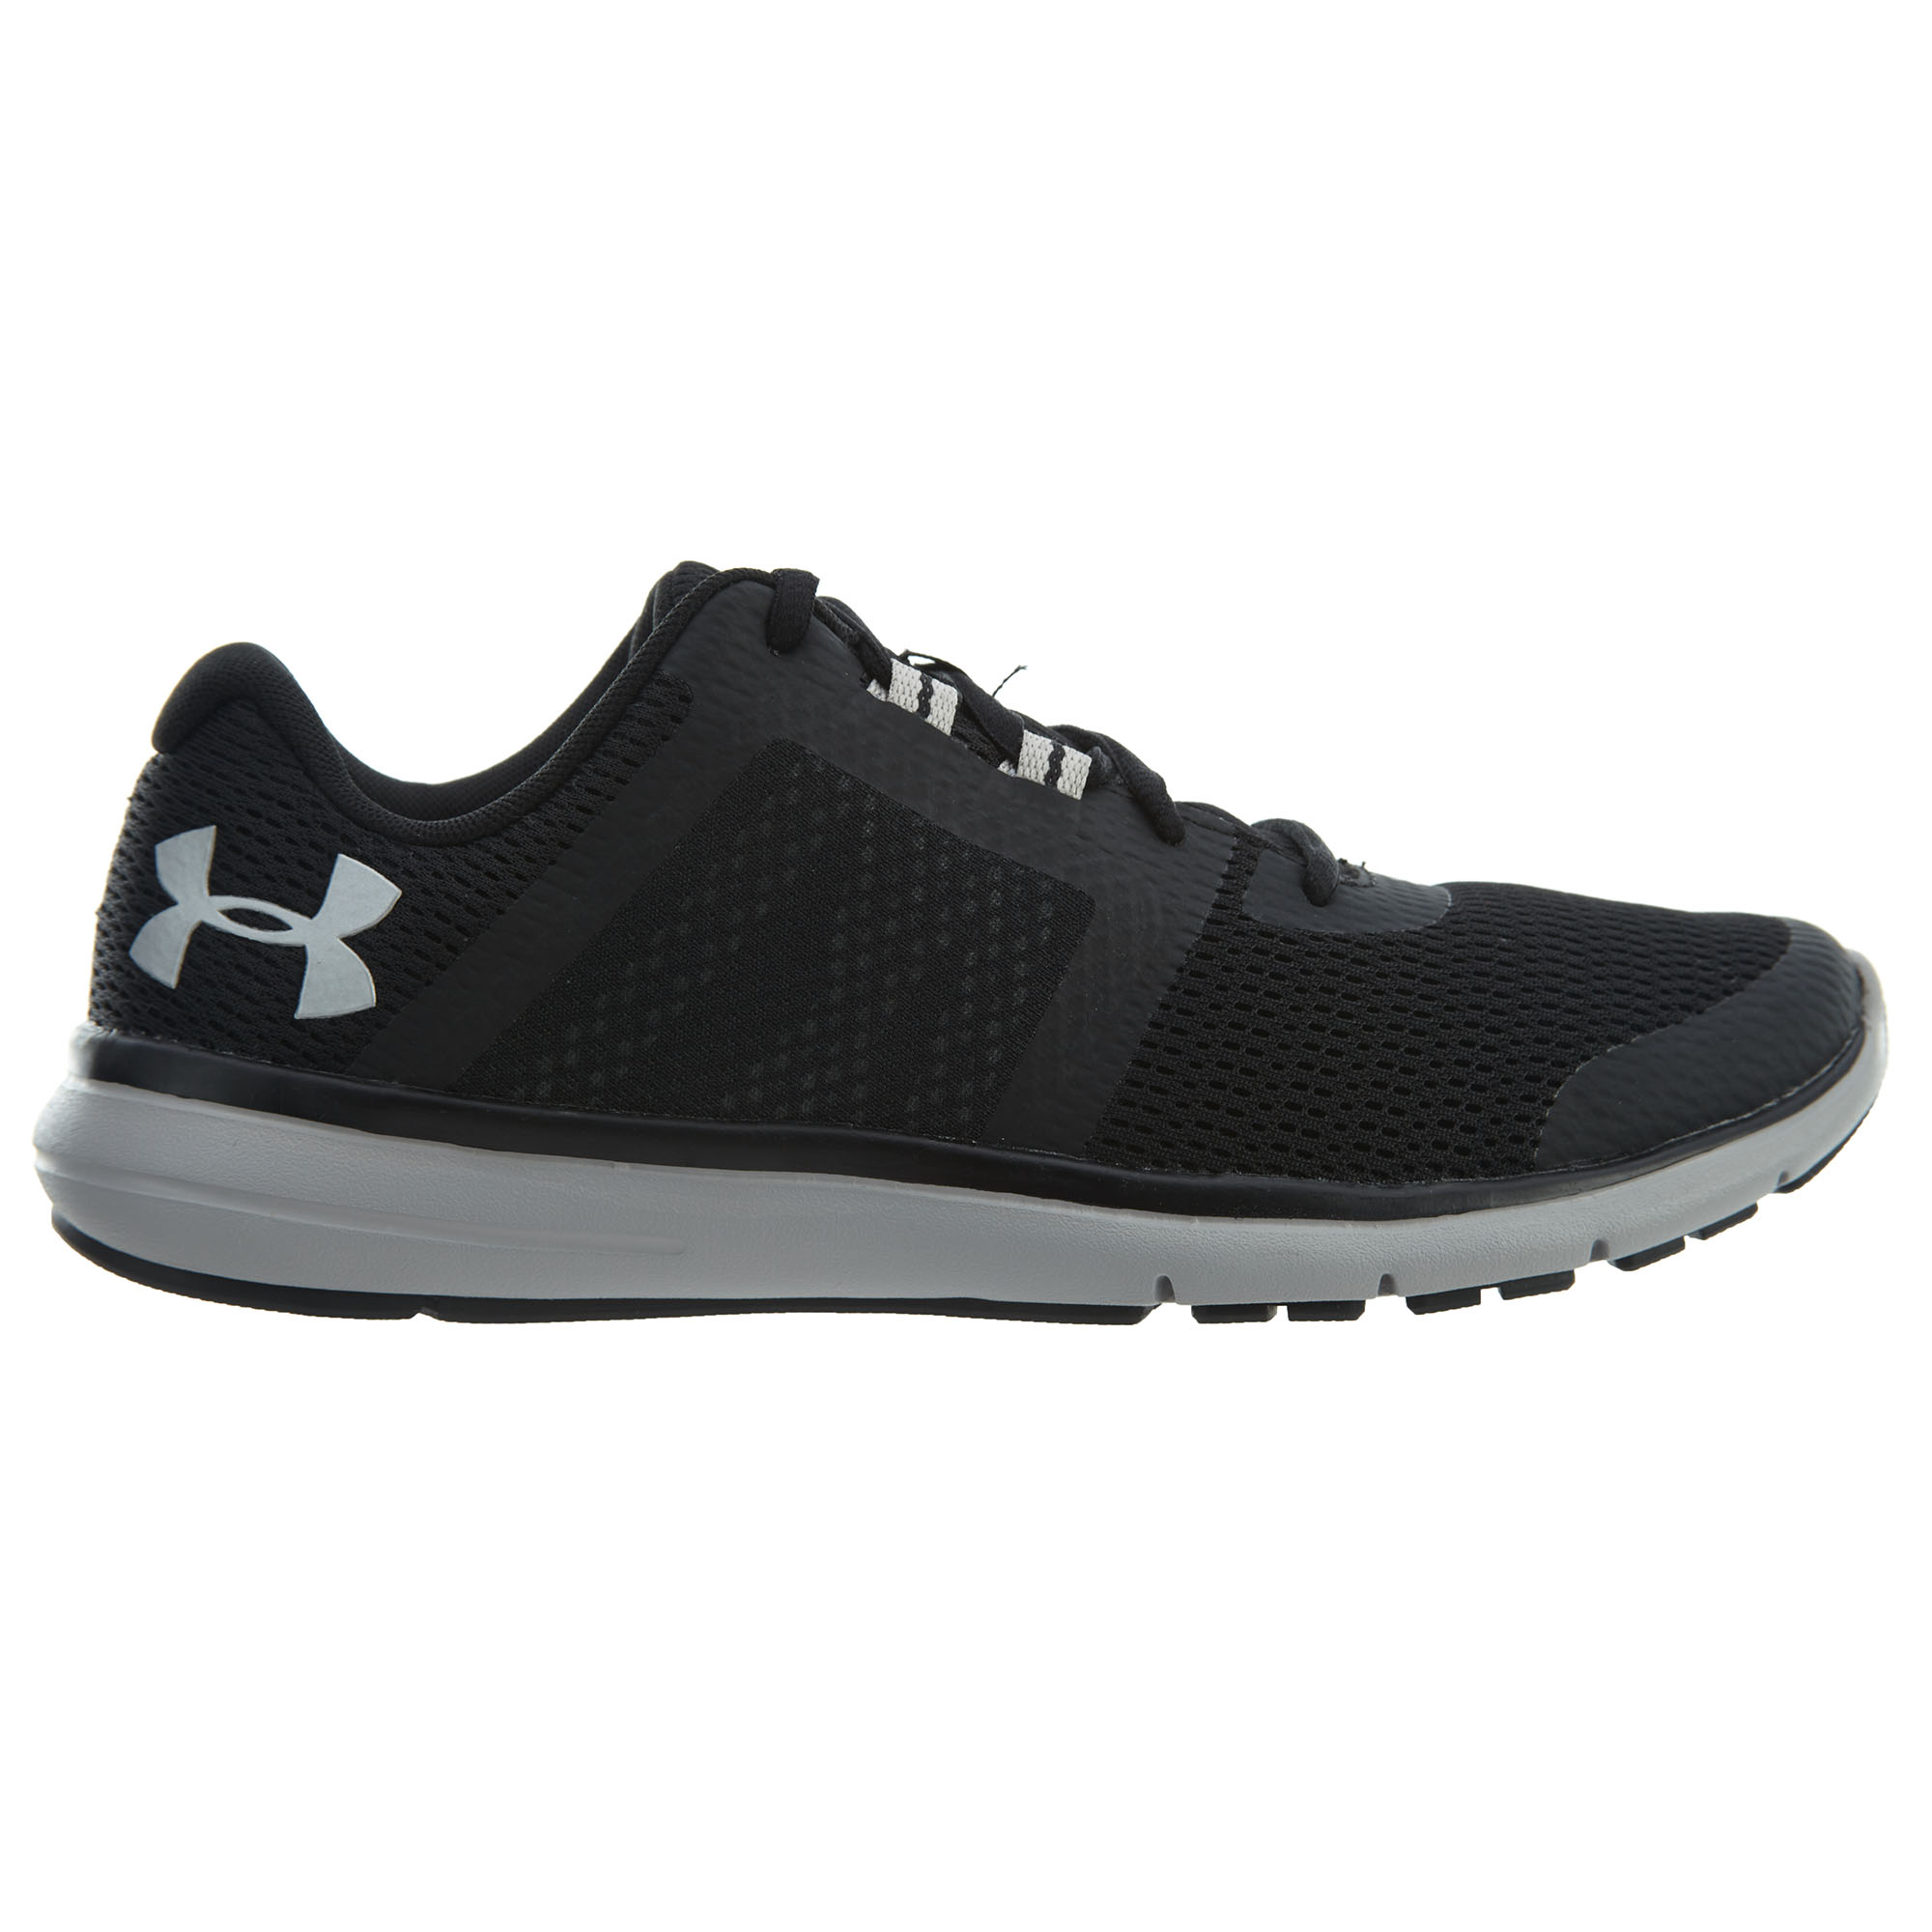 Underarmour Fuse Fst Mens Style : 3019876